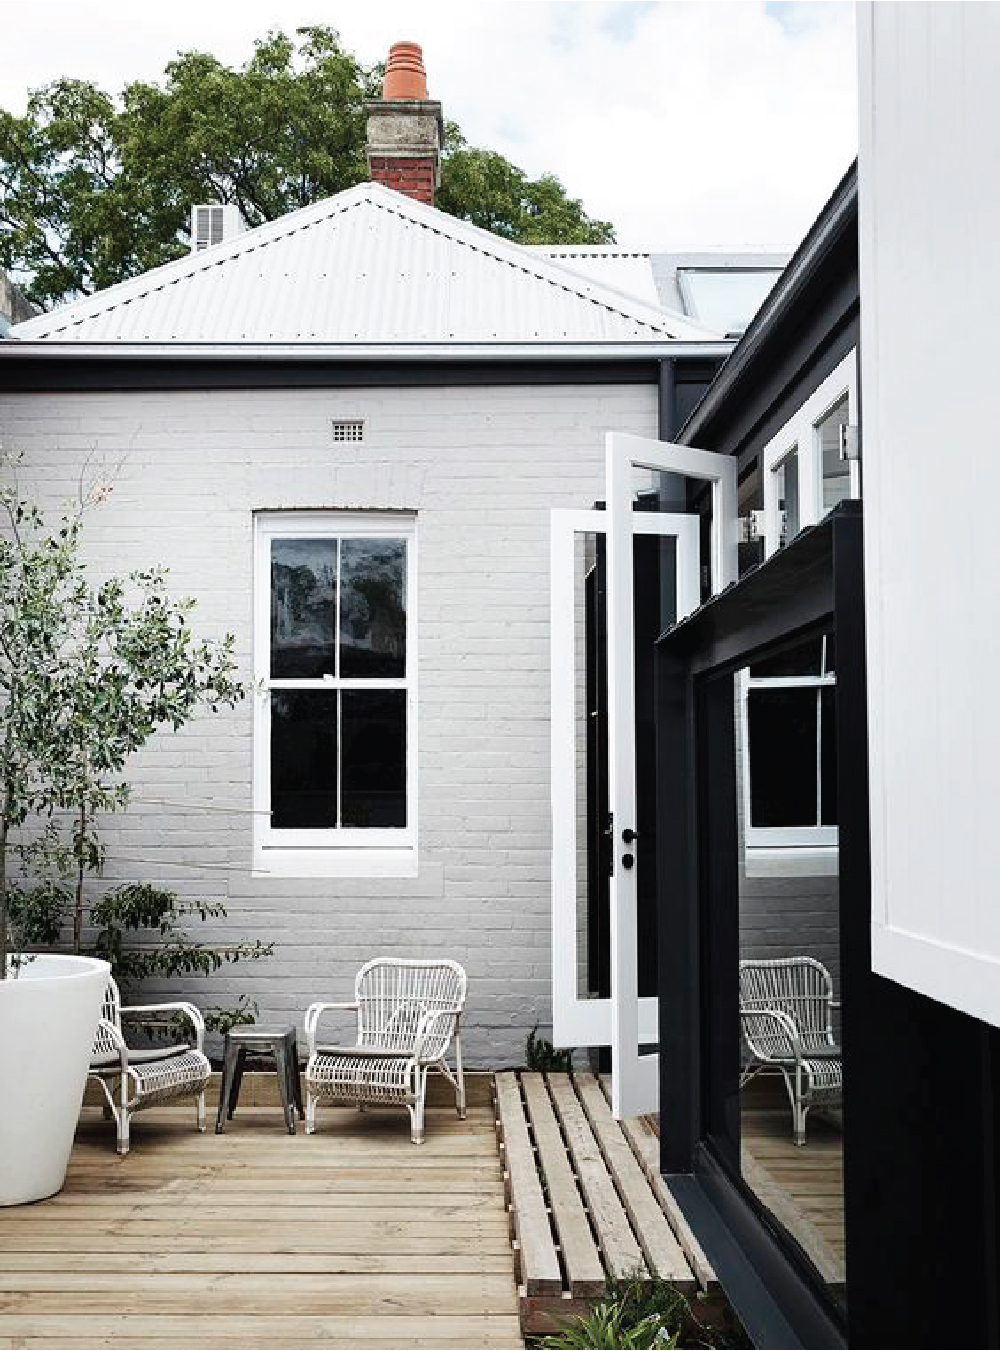 Modern, traditional houses with black door frames, white window trim, and gray walls and roof. Yum.